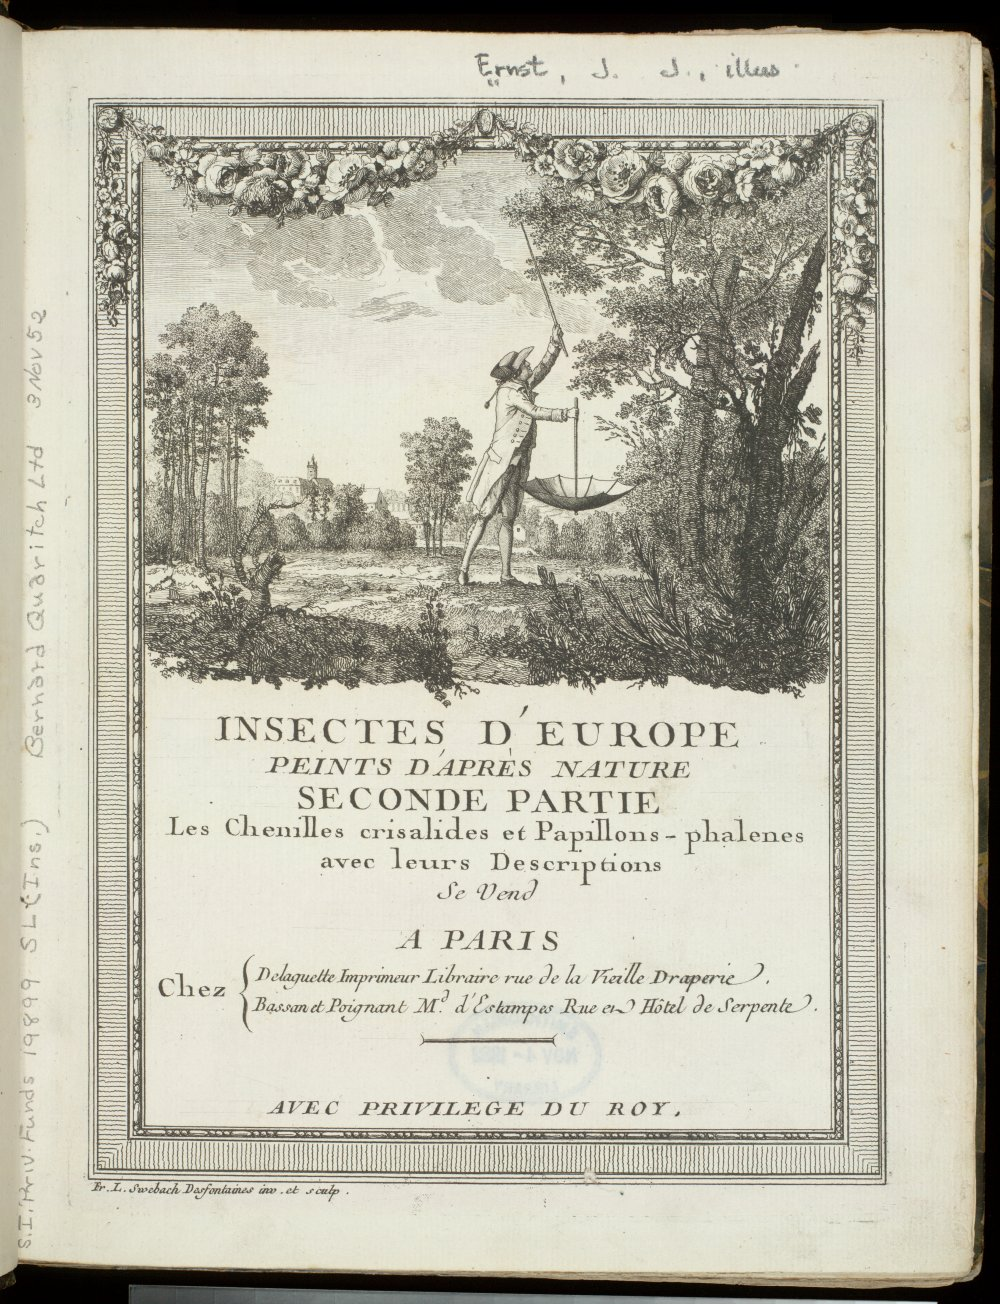 Title page and frontispiece showing collecting instruments, including umbrella,  Image number:SIL21-01-001